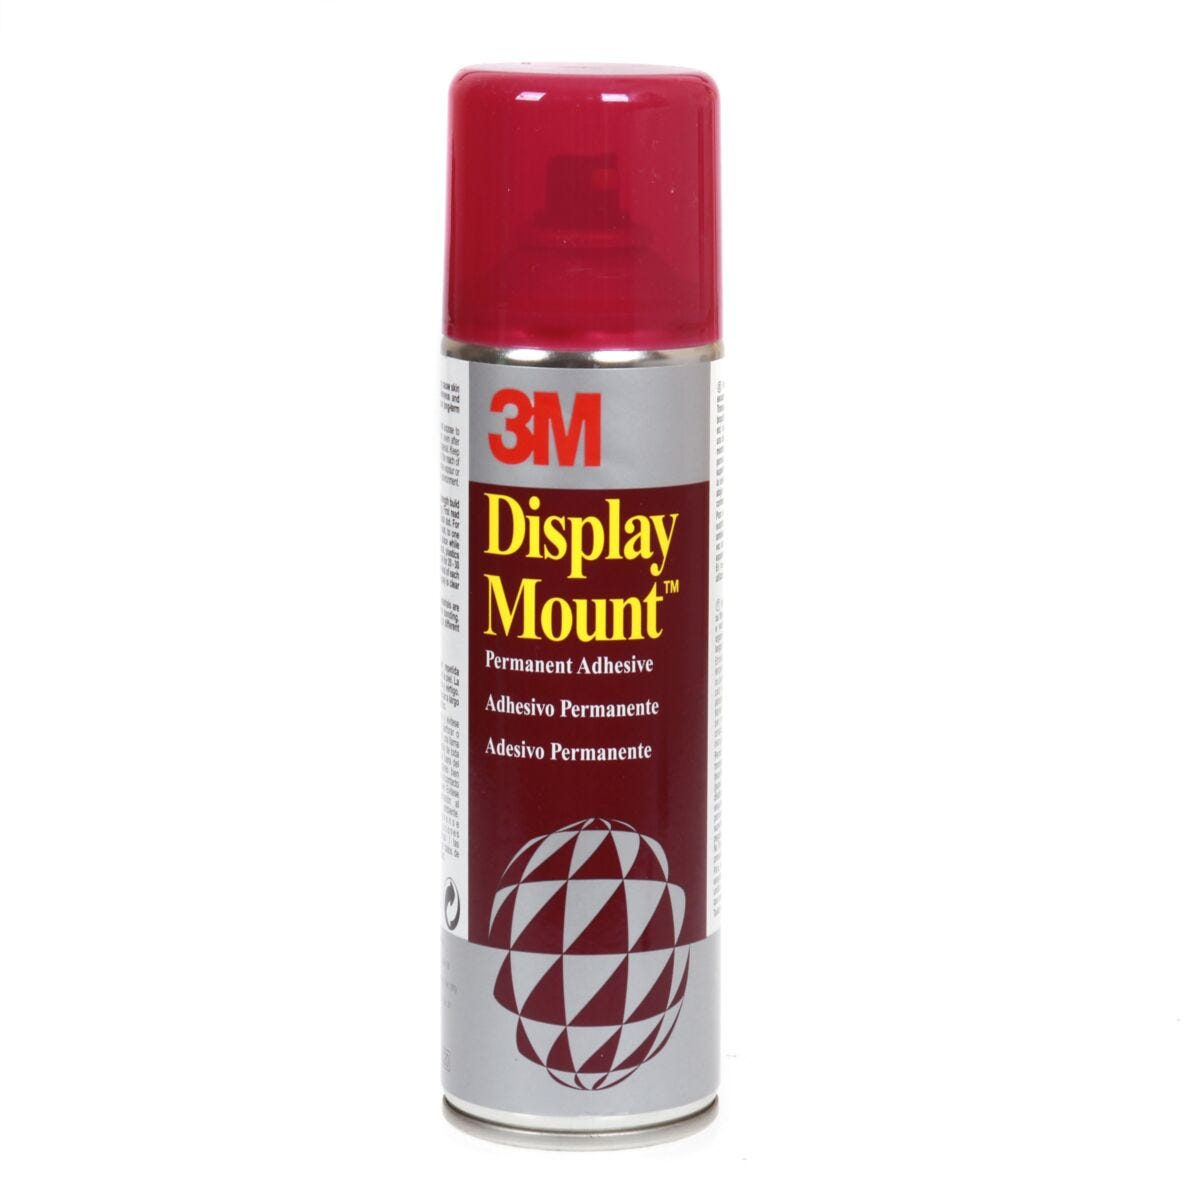 3M Scotch Display Mount 400ml